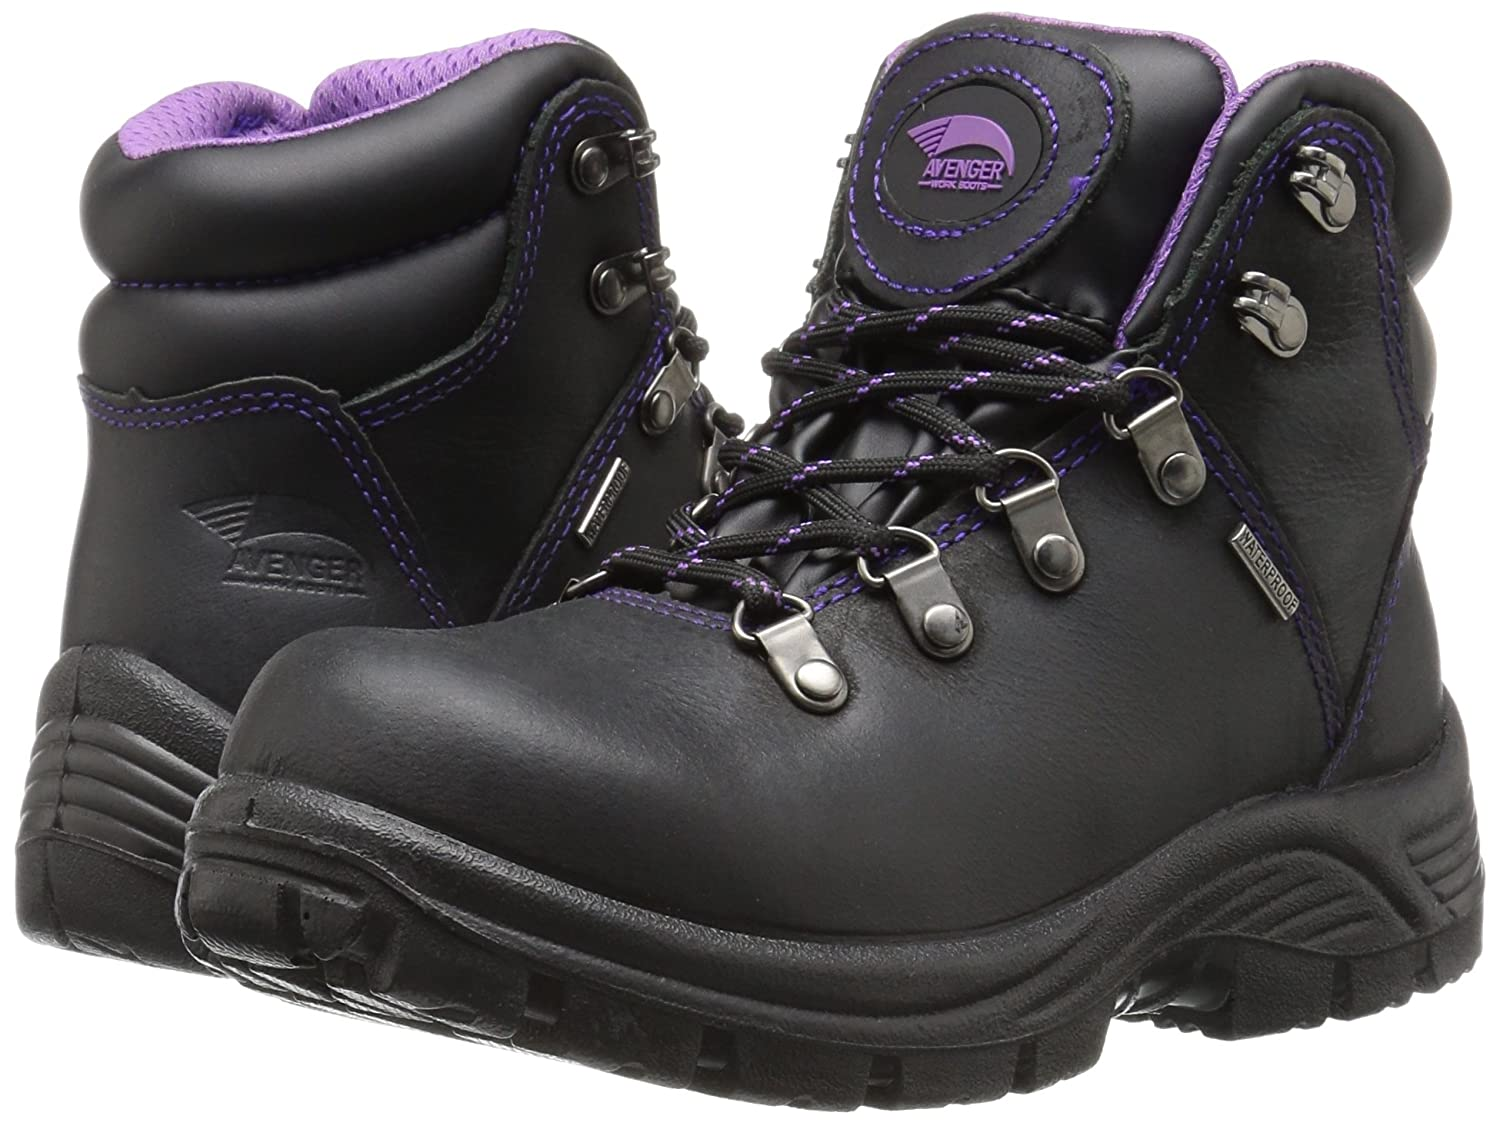 41717ec35ad Amazon.com  Avenger Women s 7124 Leather Waterproof EH Slip Resistant Work  Boot  Shoes